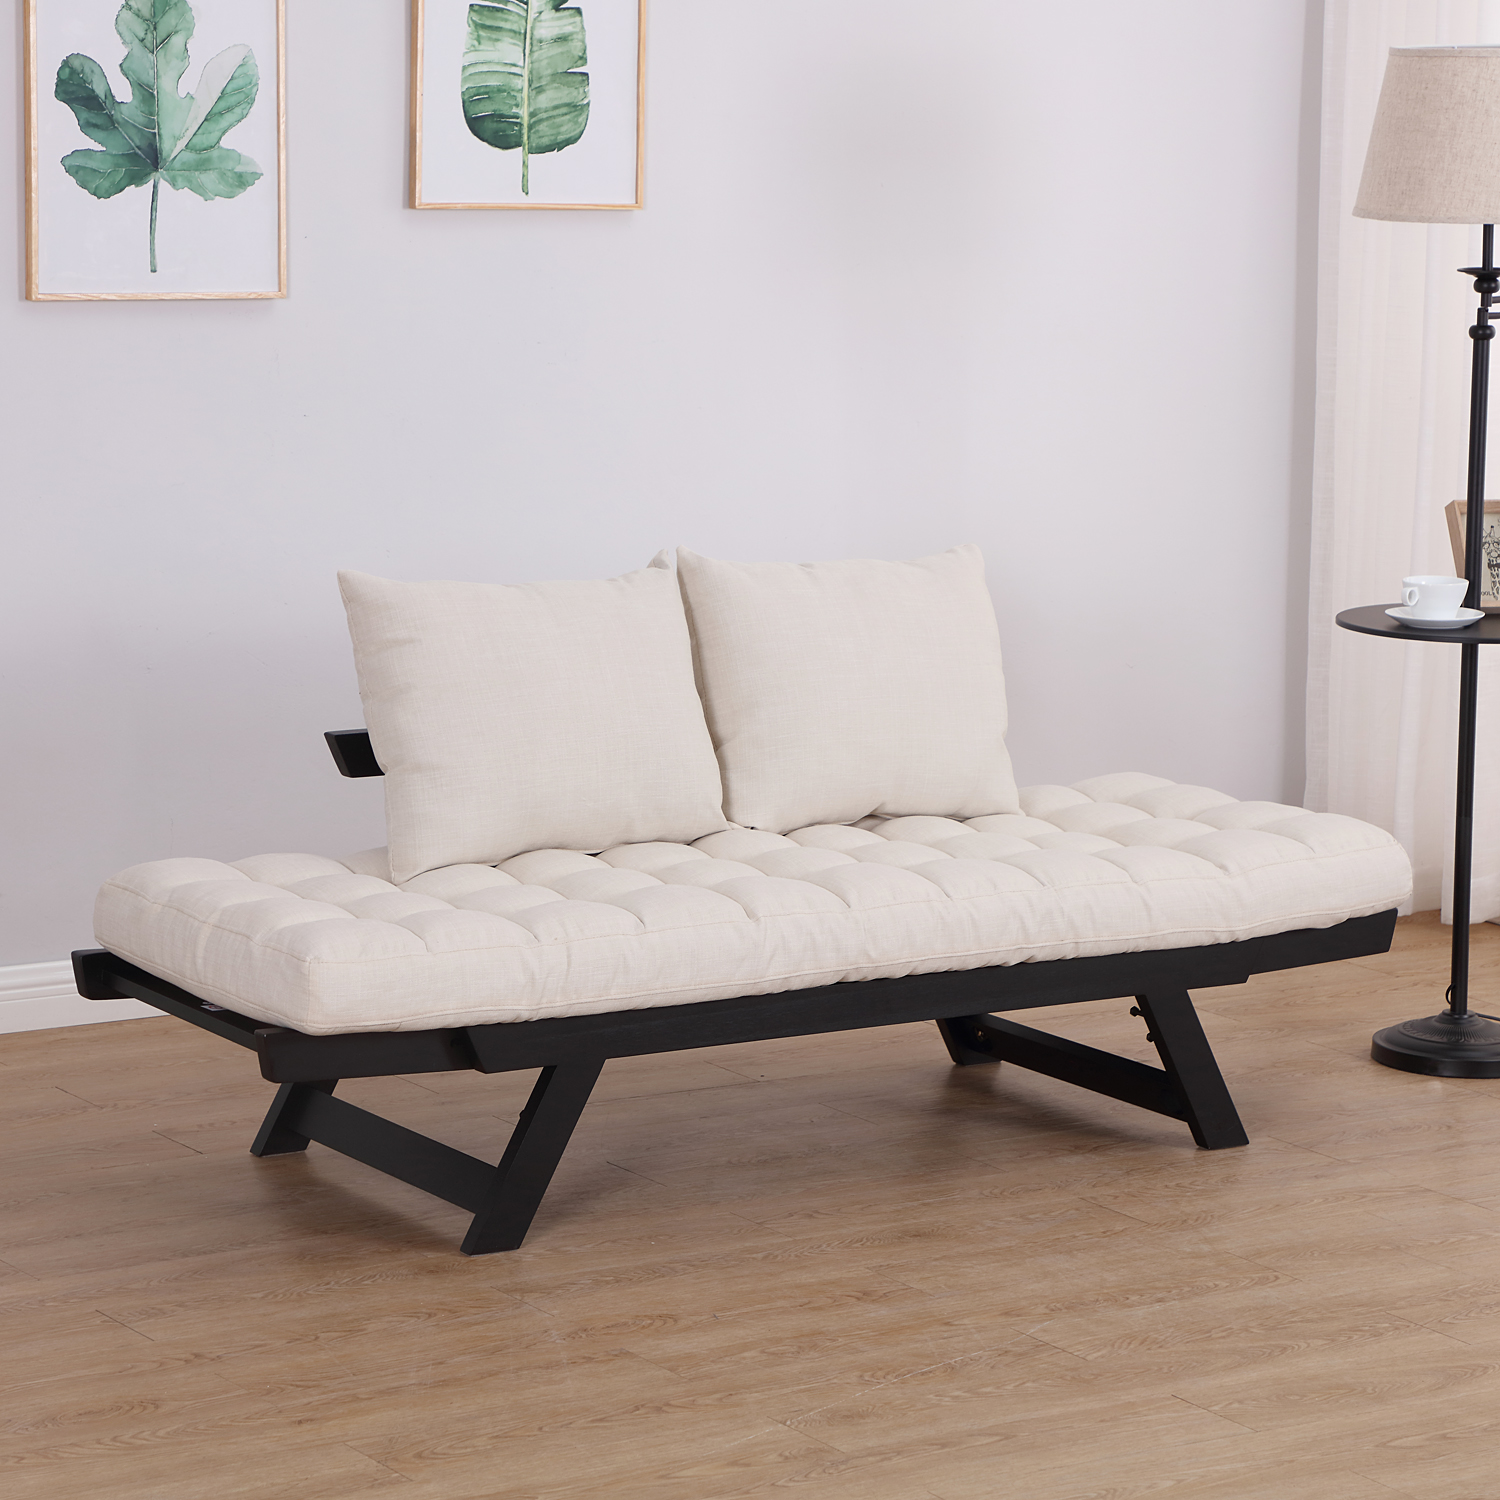 Convertible-Sofa-Bed-Sleeper-Couch-Chaise-Lounge-Chair-Adjustable-Padded-Pillow thumbnail 6